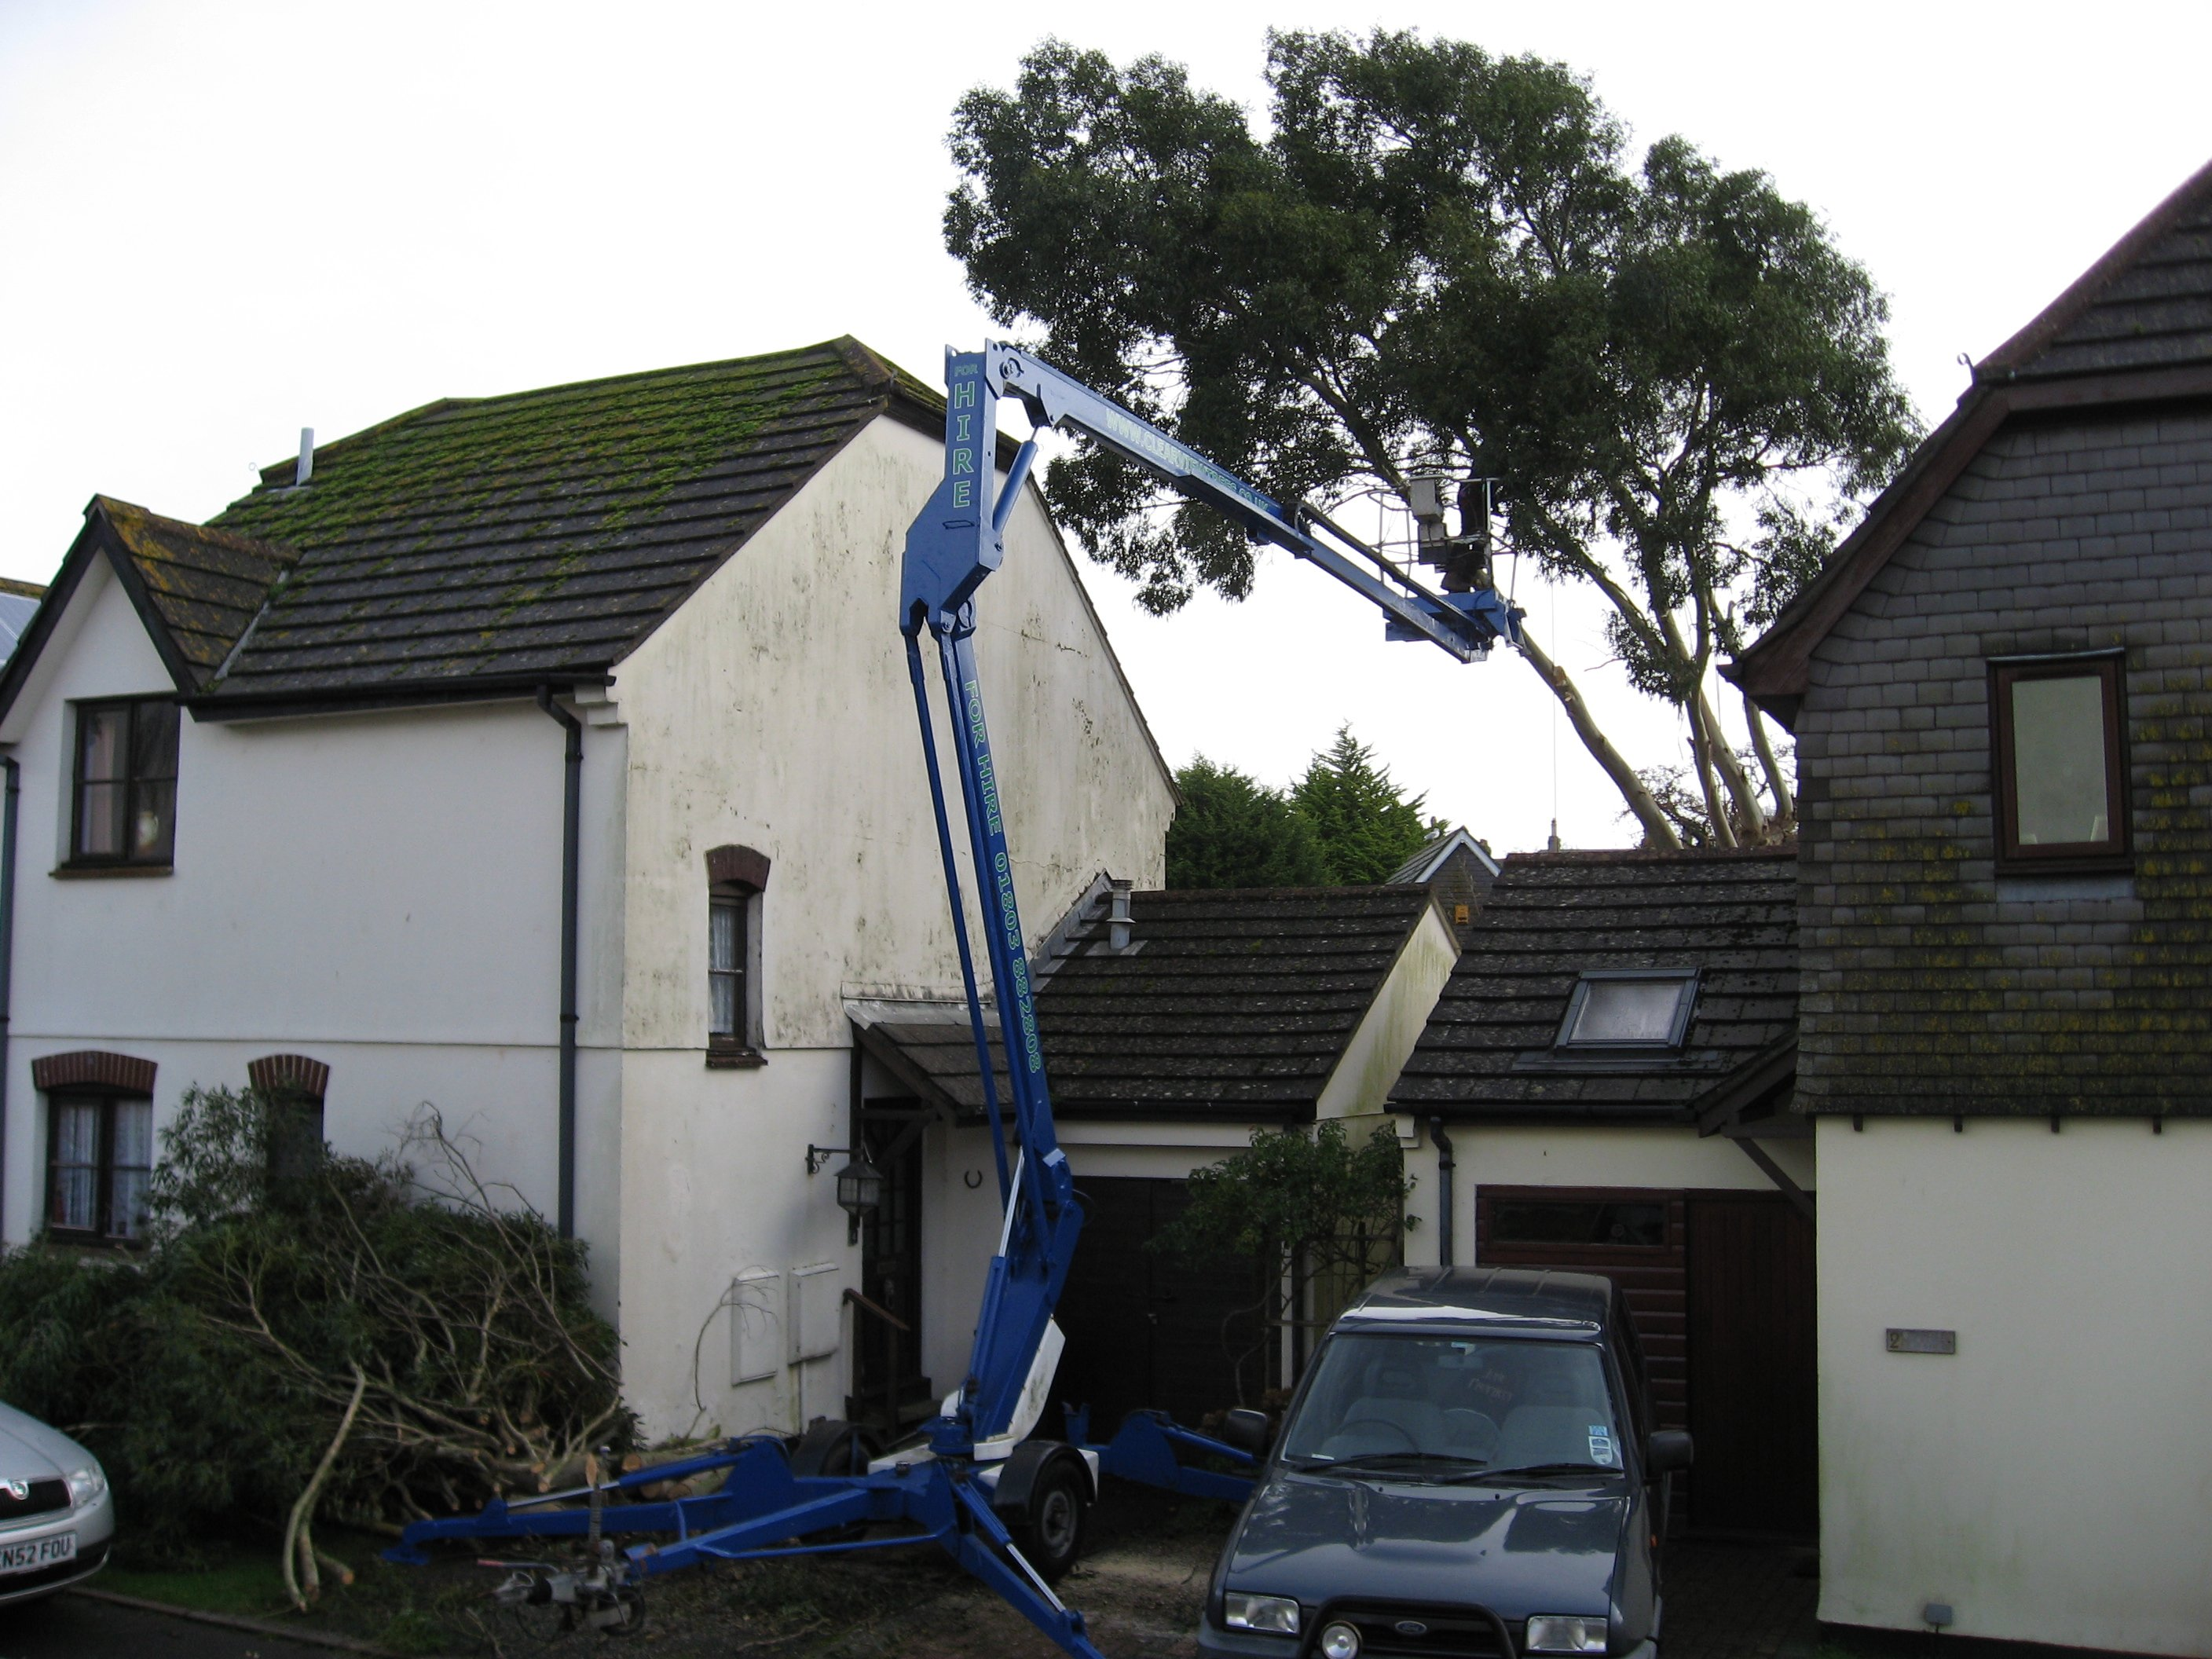 tree felling equipment